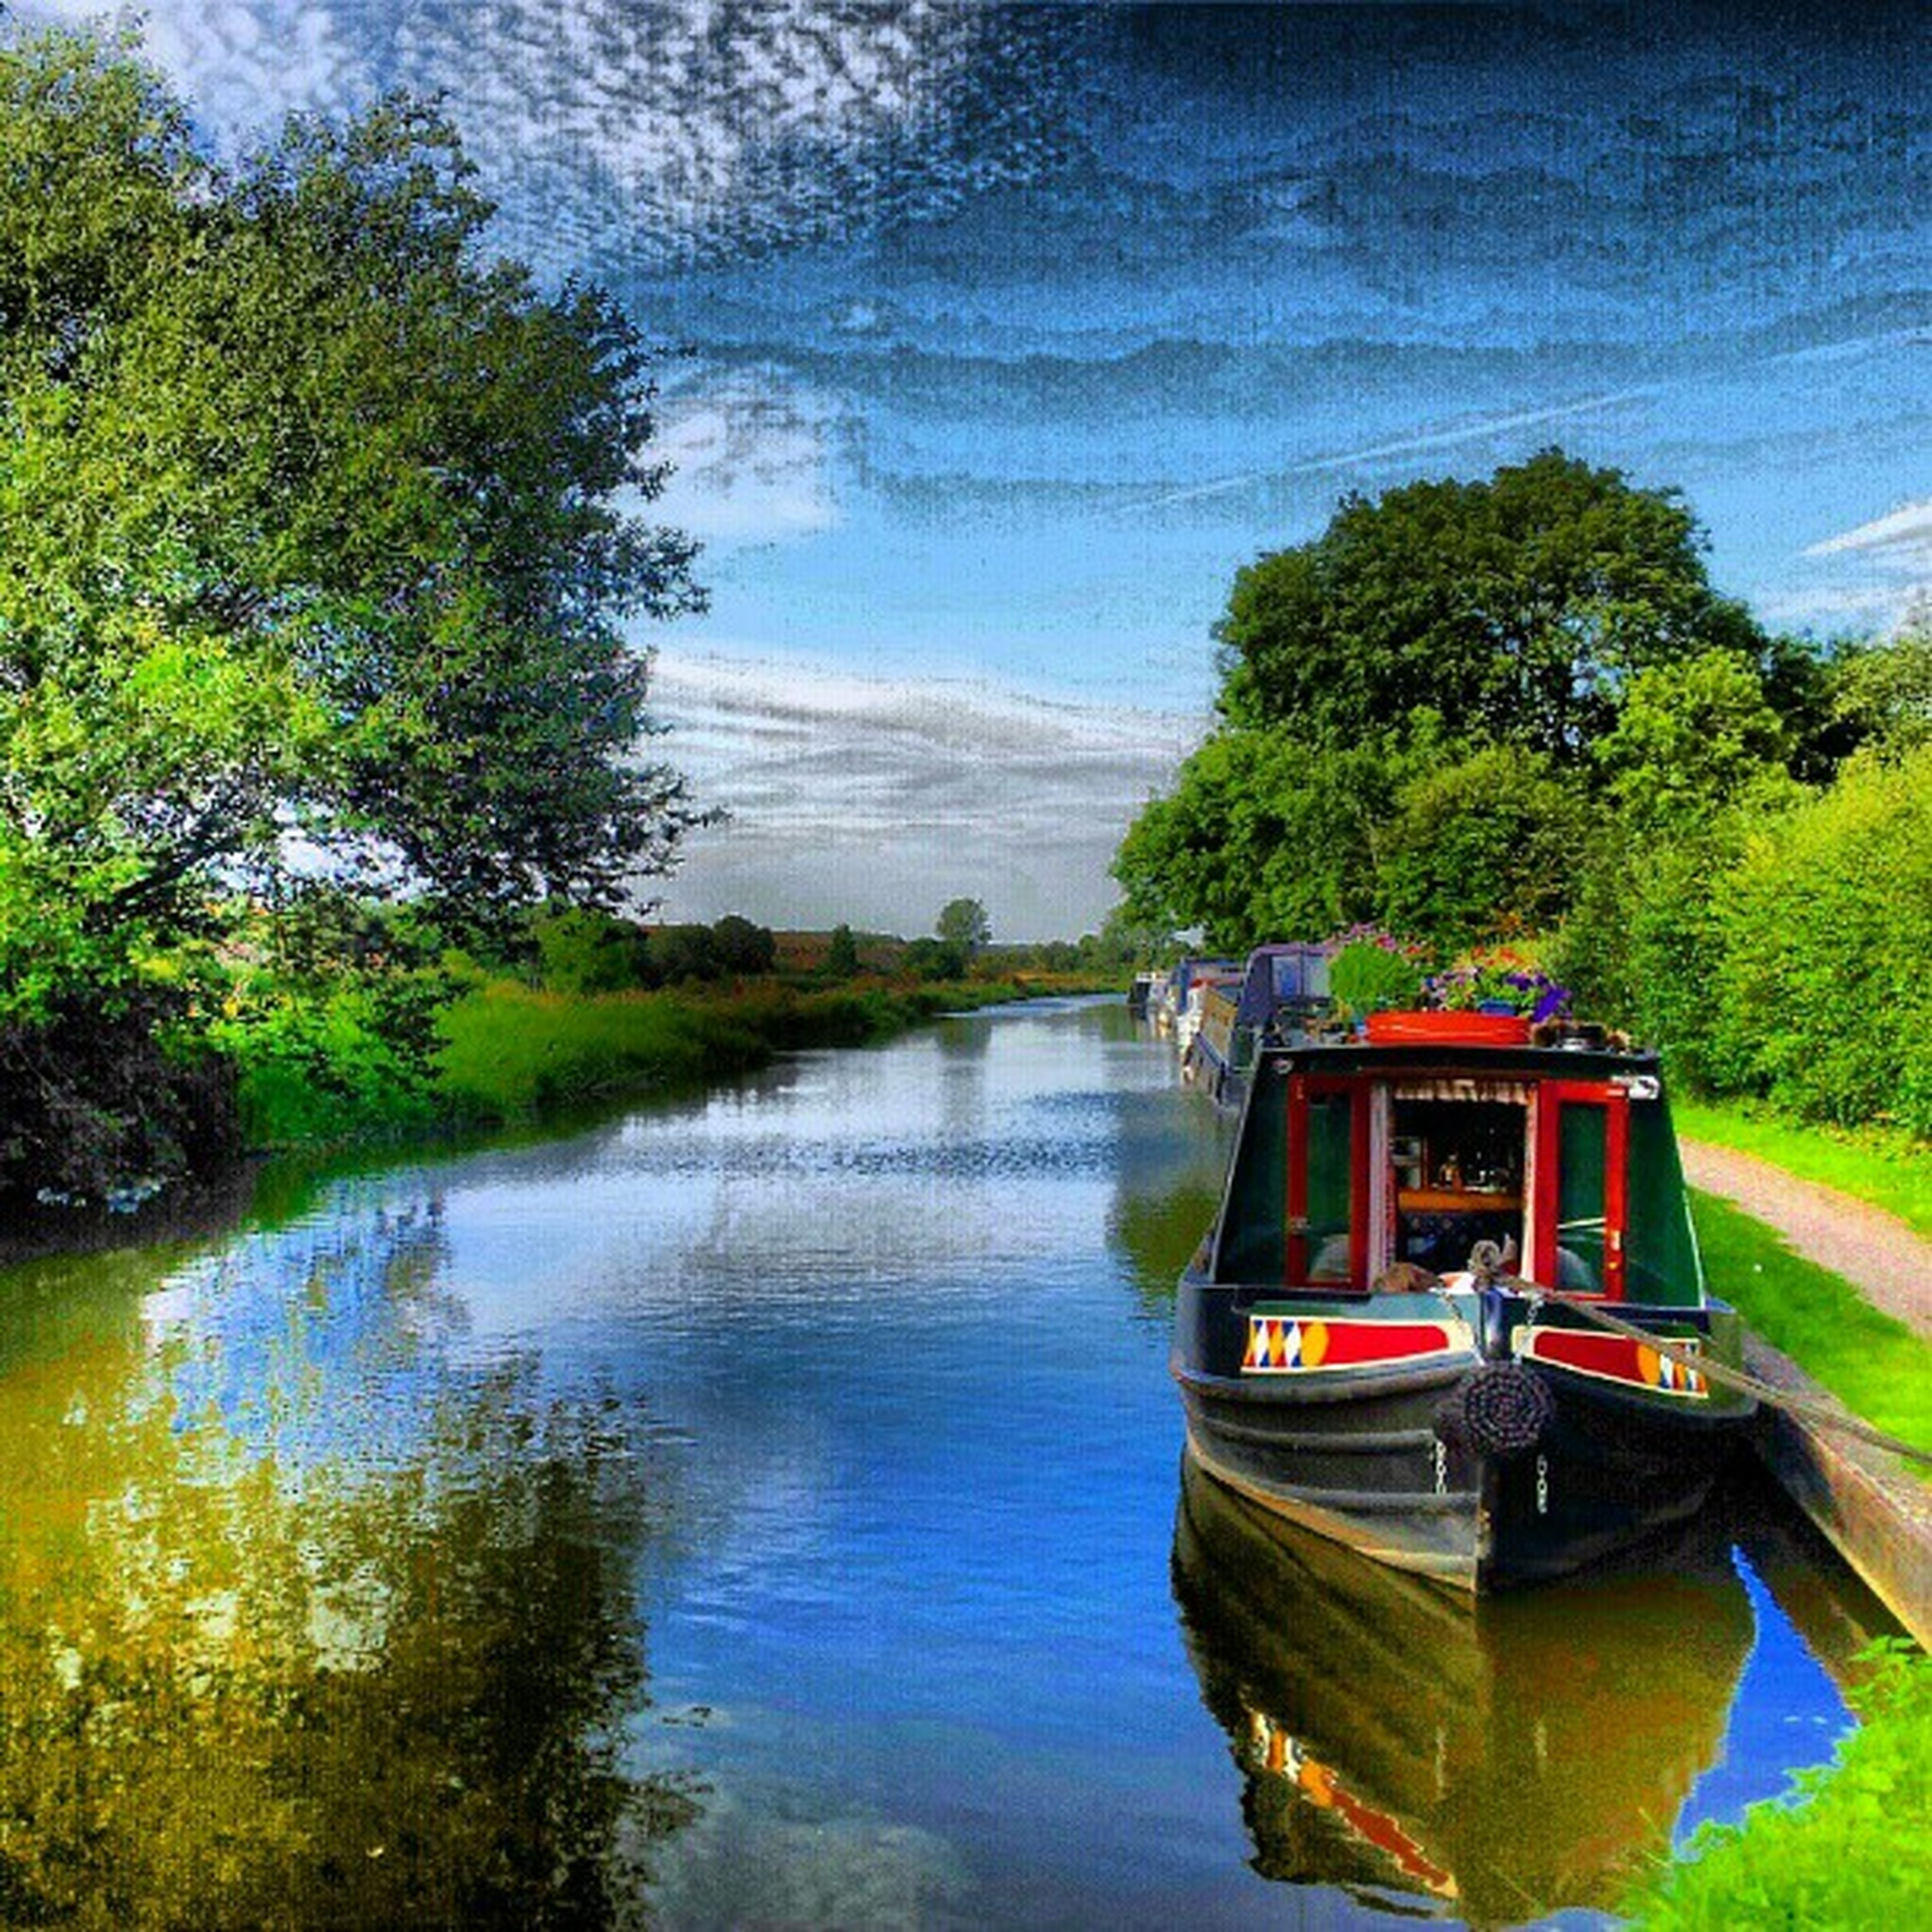 water, tree, reflection, nautical vessel, transportation, mode of transport, boat, lake, tranquility, sky, tranquil scene, moored, nature, scenics, beauty in nature, growth, river, cloud - sky, green color, waterfront